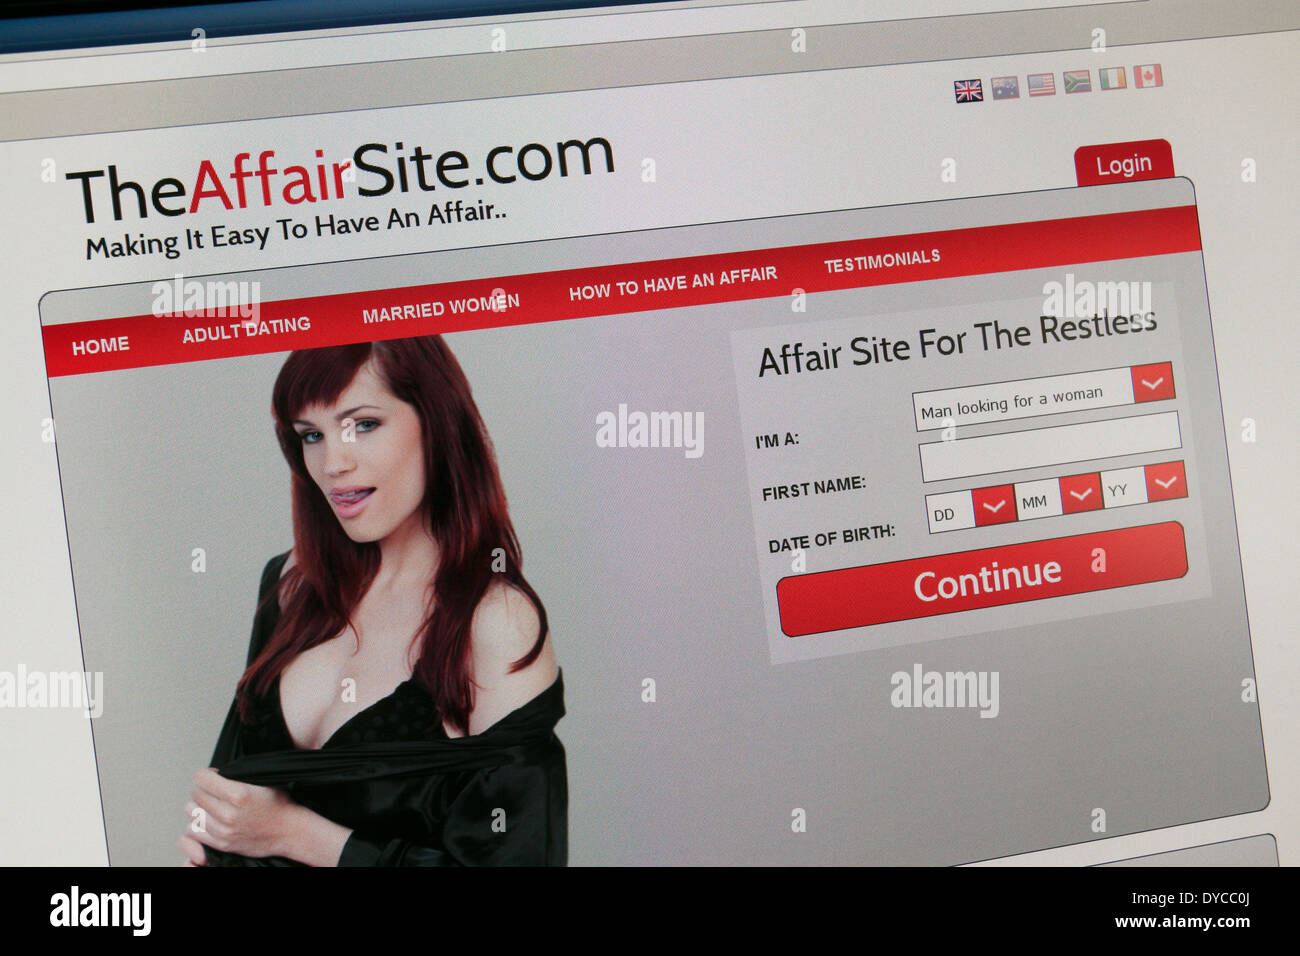 Dating website affairs #1